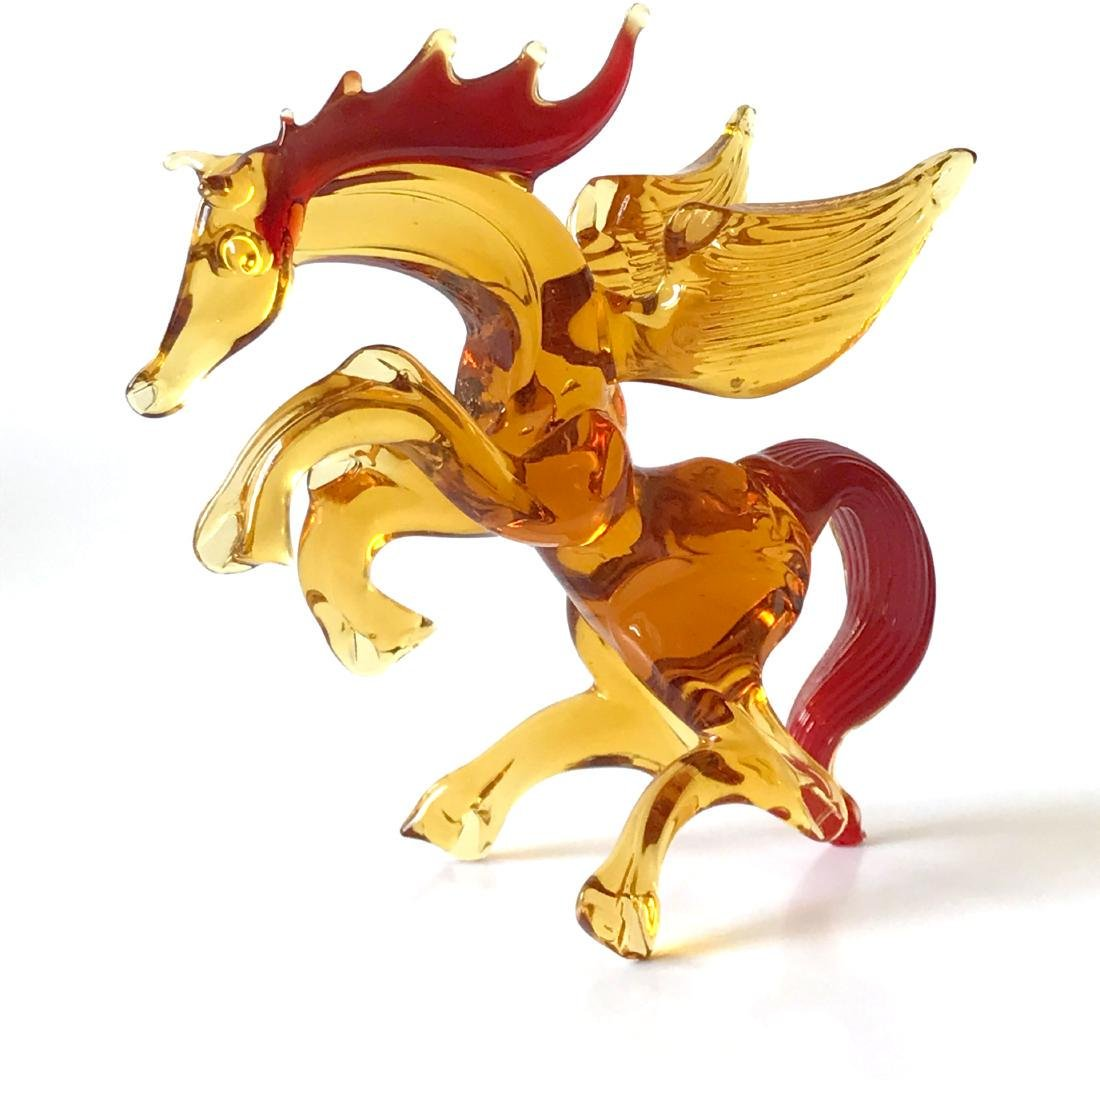 Figurine of Pegasus the winged horse amber coloured